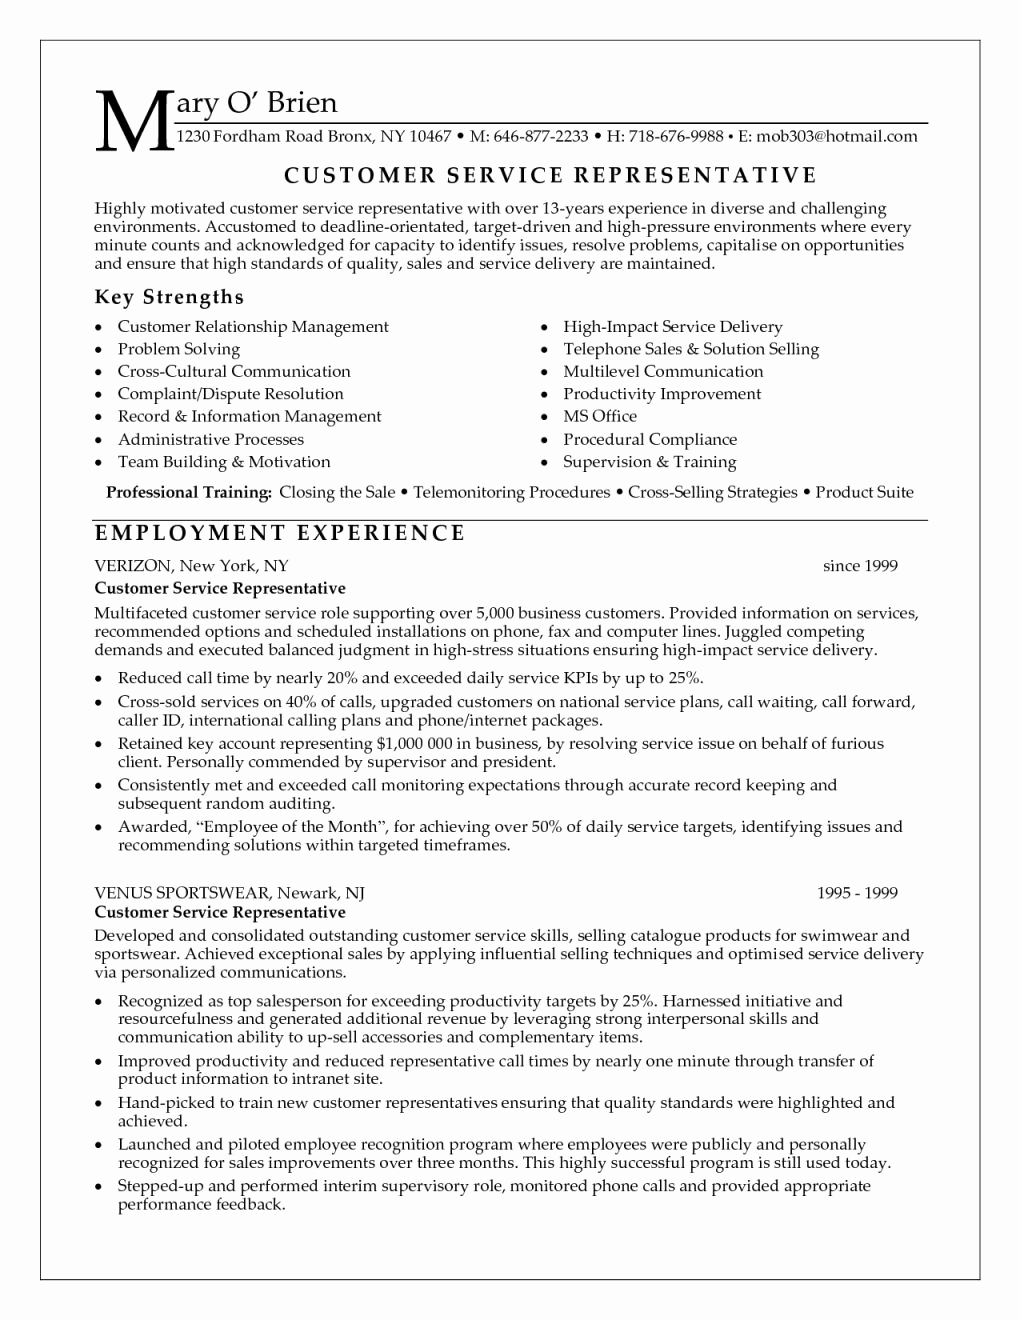 Customer Reference Letter Template - College Resume Templates Resume Outline Examples Unique Od